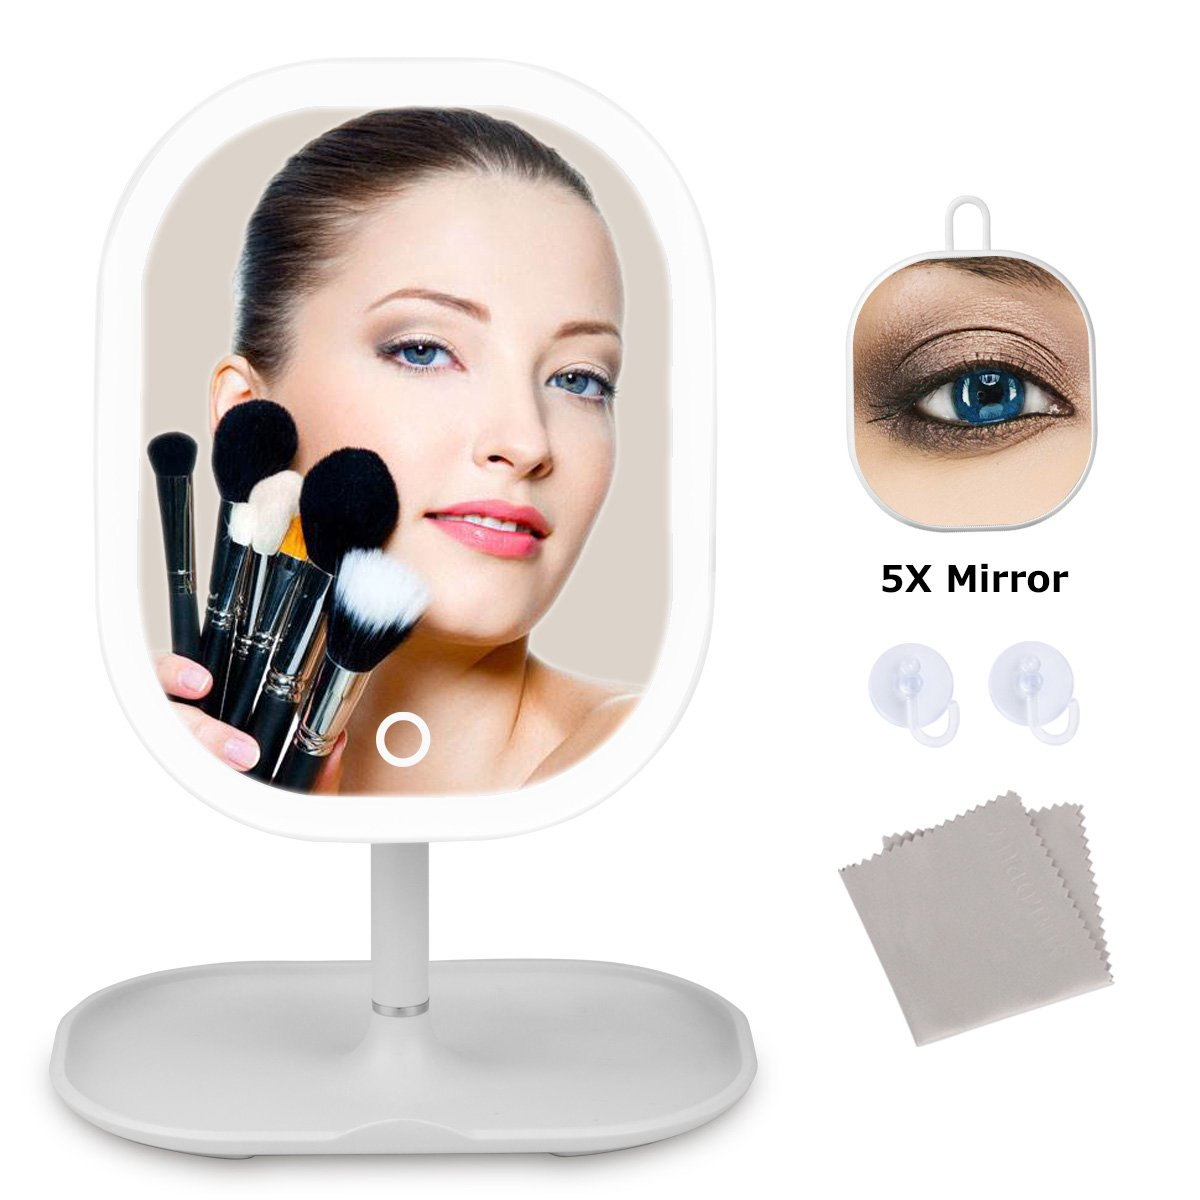 Melophy-Houstor Lighted Makeup Mirror, Rechargeable LED Travel Mirror Detachable 5X Magnification, Touch Dimmable Light Vanity Mirror, Portable Countertop Cosmetic Mirror, White